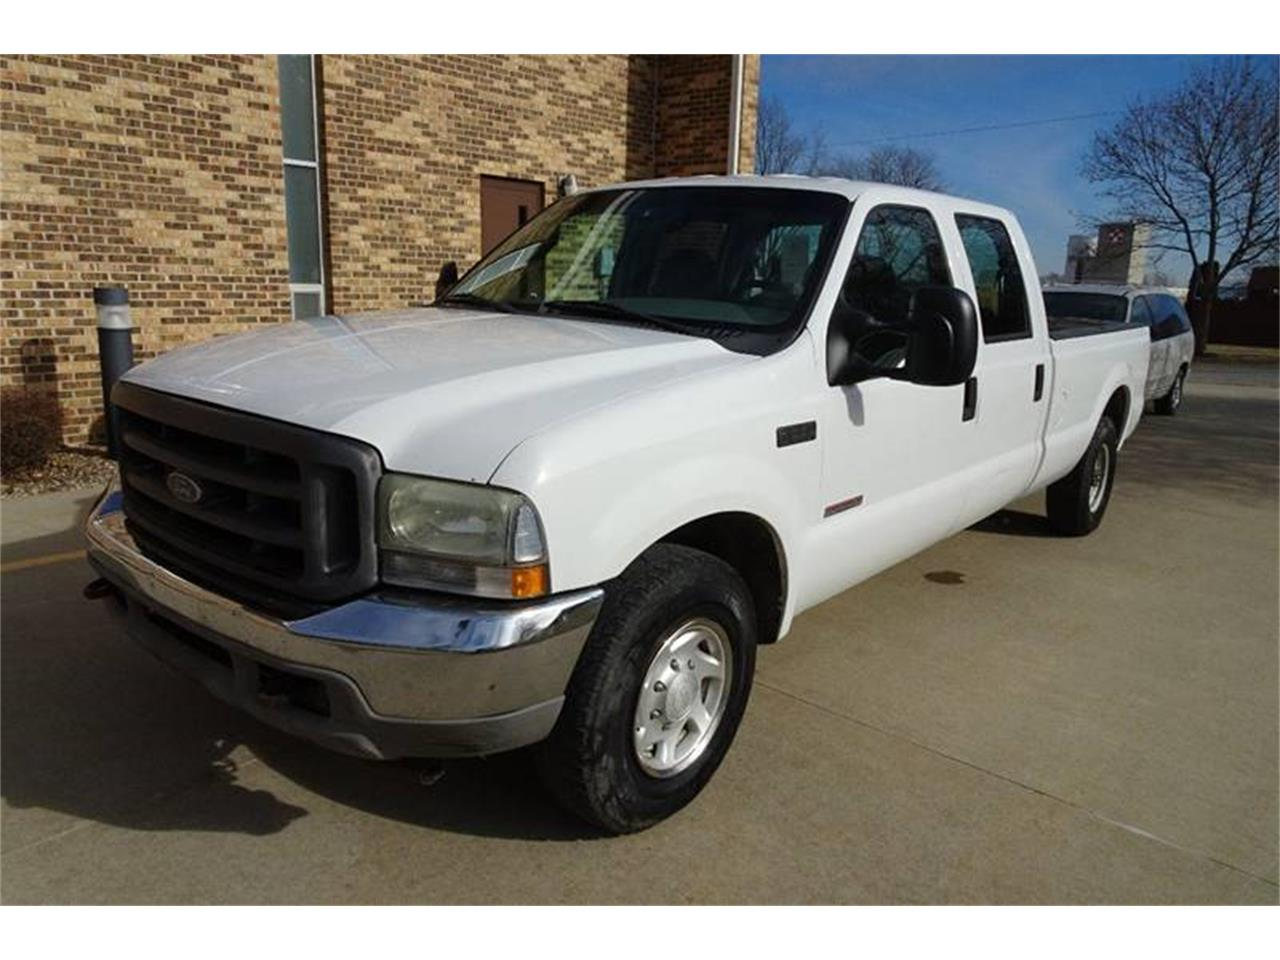 Large picture of 04 f250 mrx5